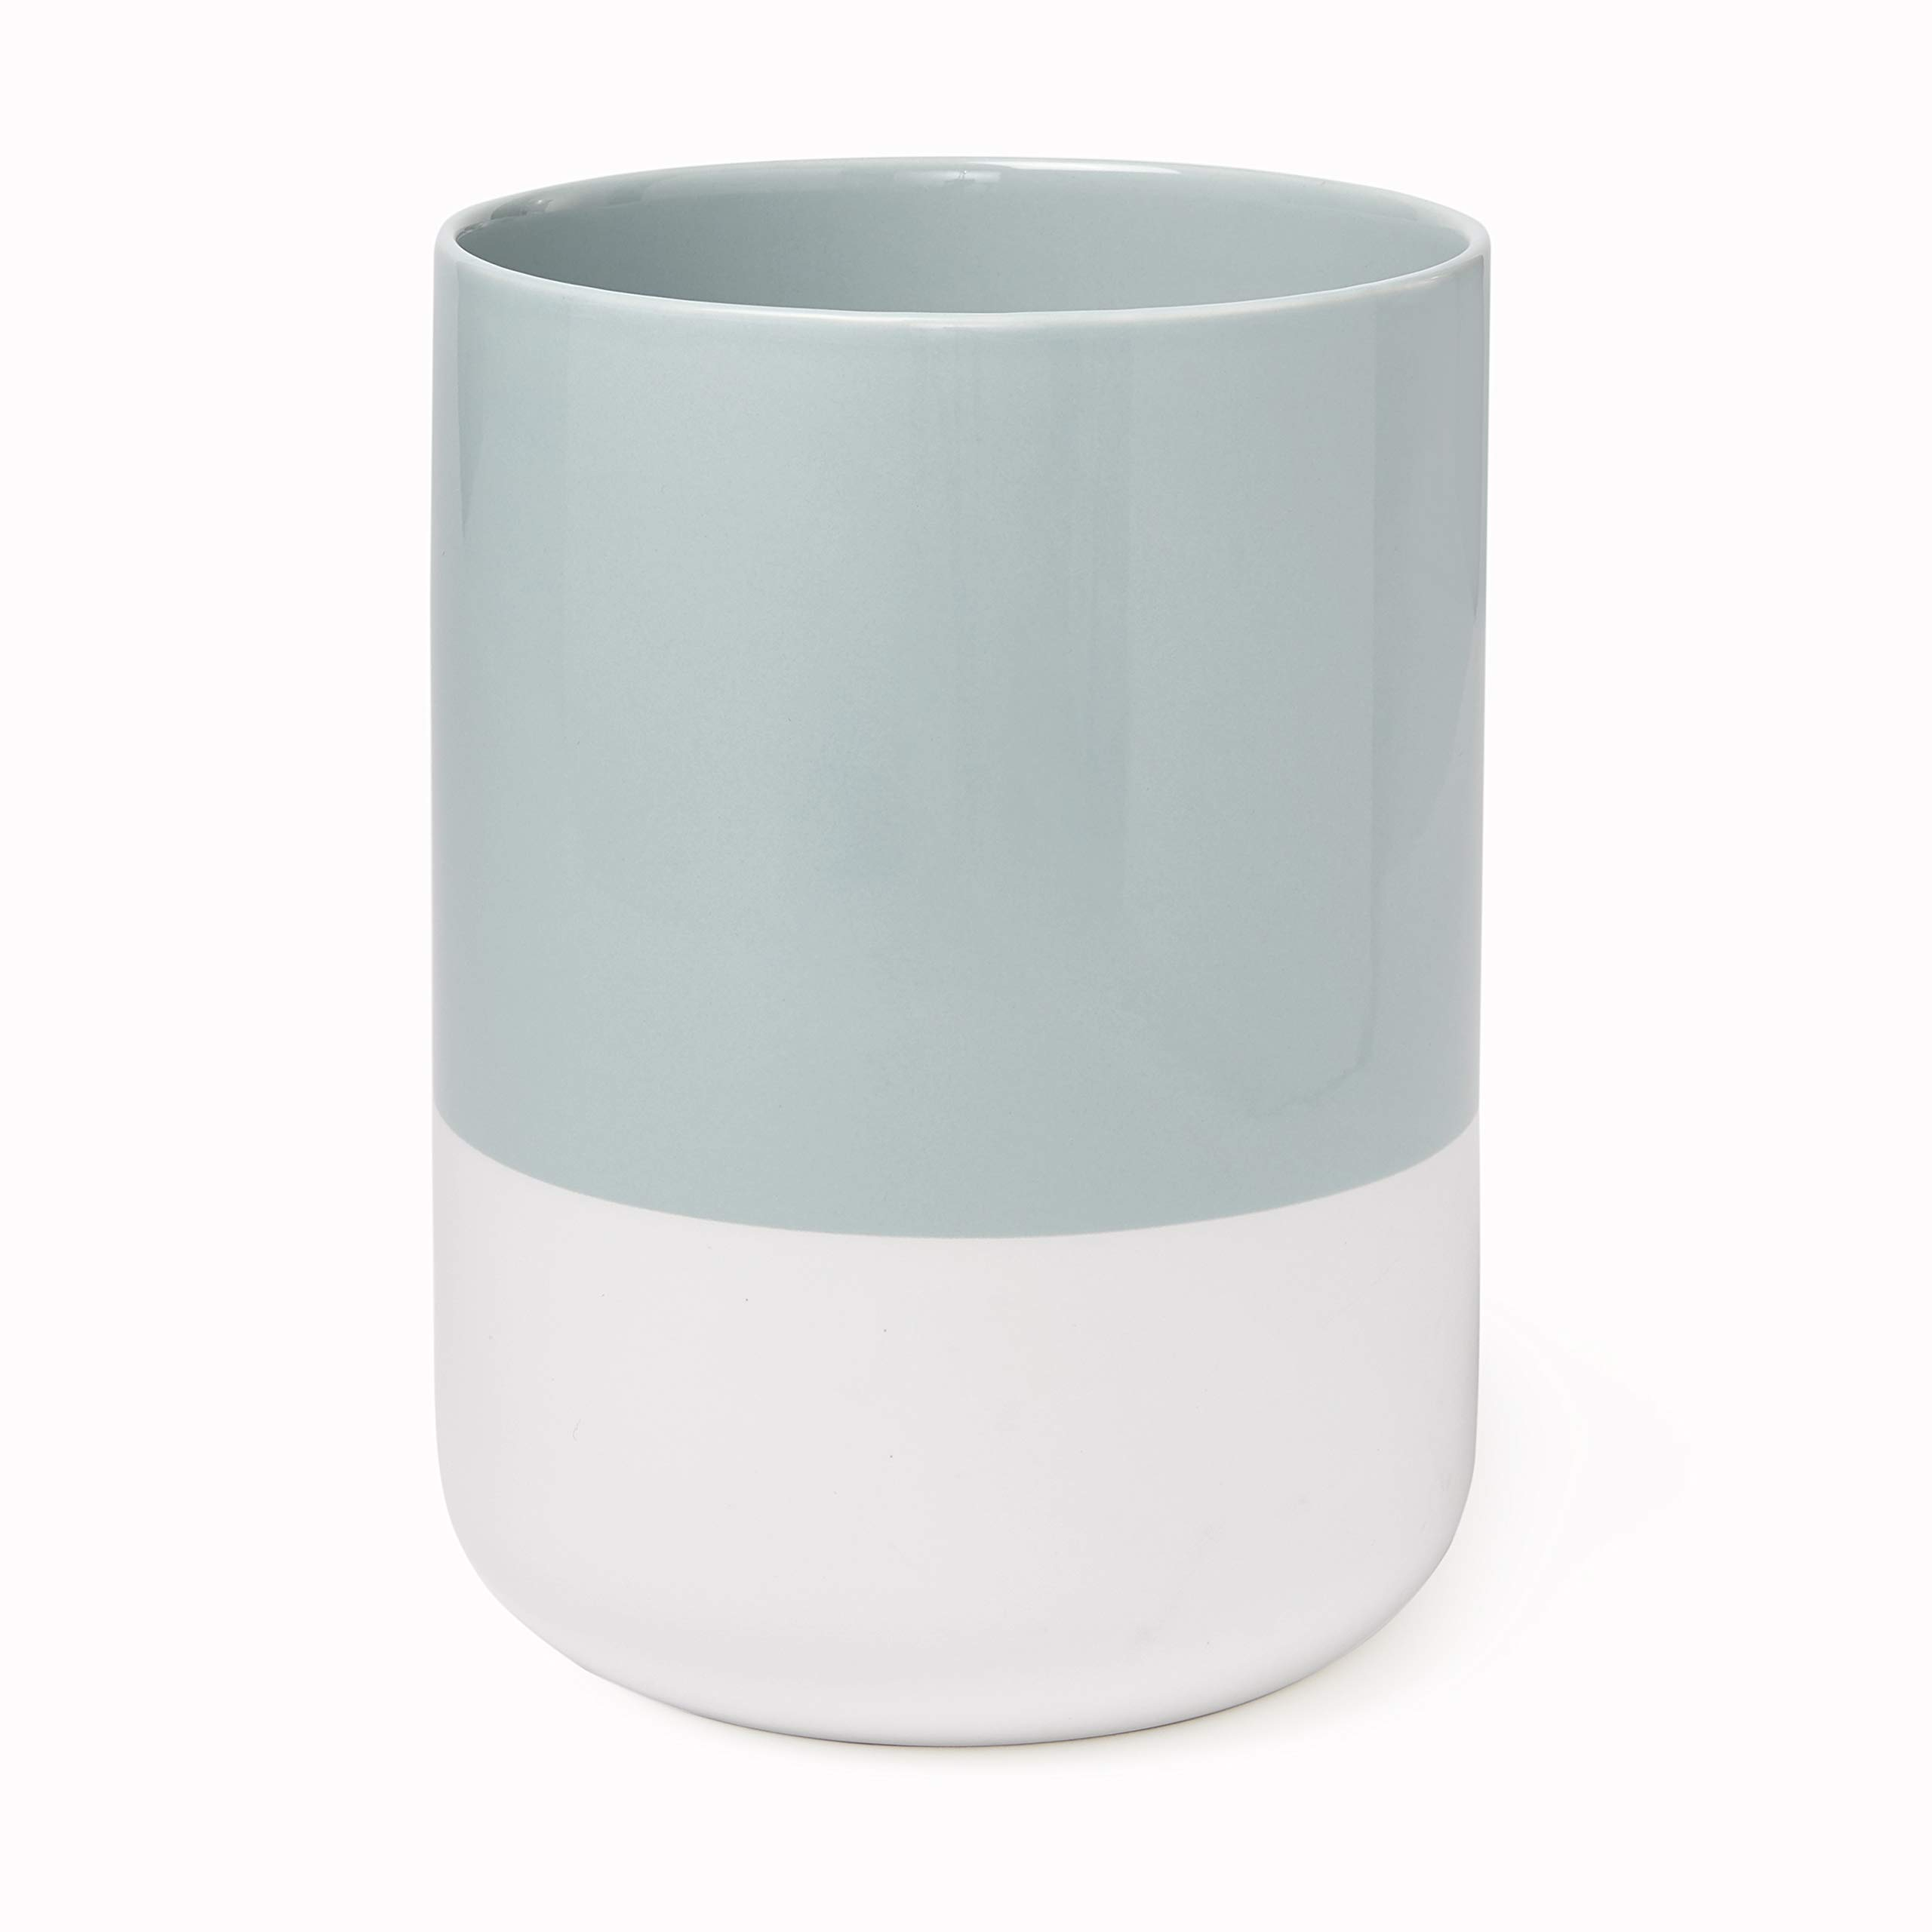 Kate Spade New York Half Dot Waste Basket Bath Accessories, Turquoise/White by Kate Spade New York